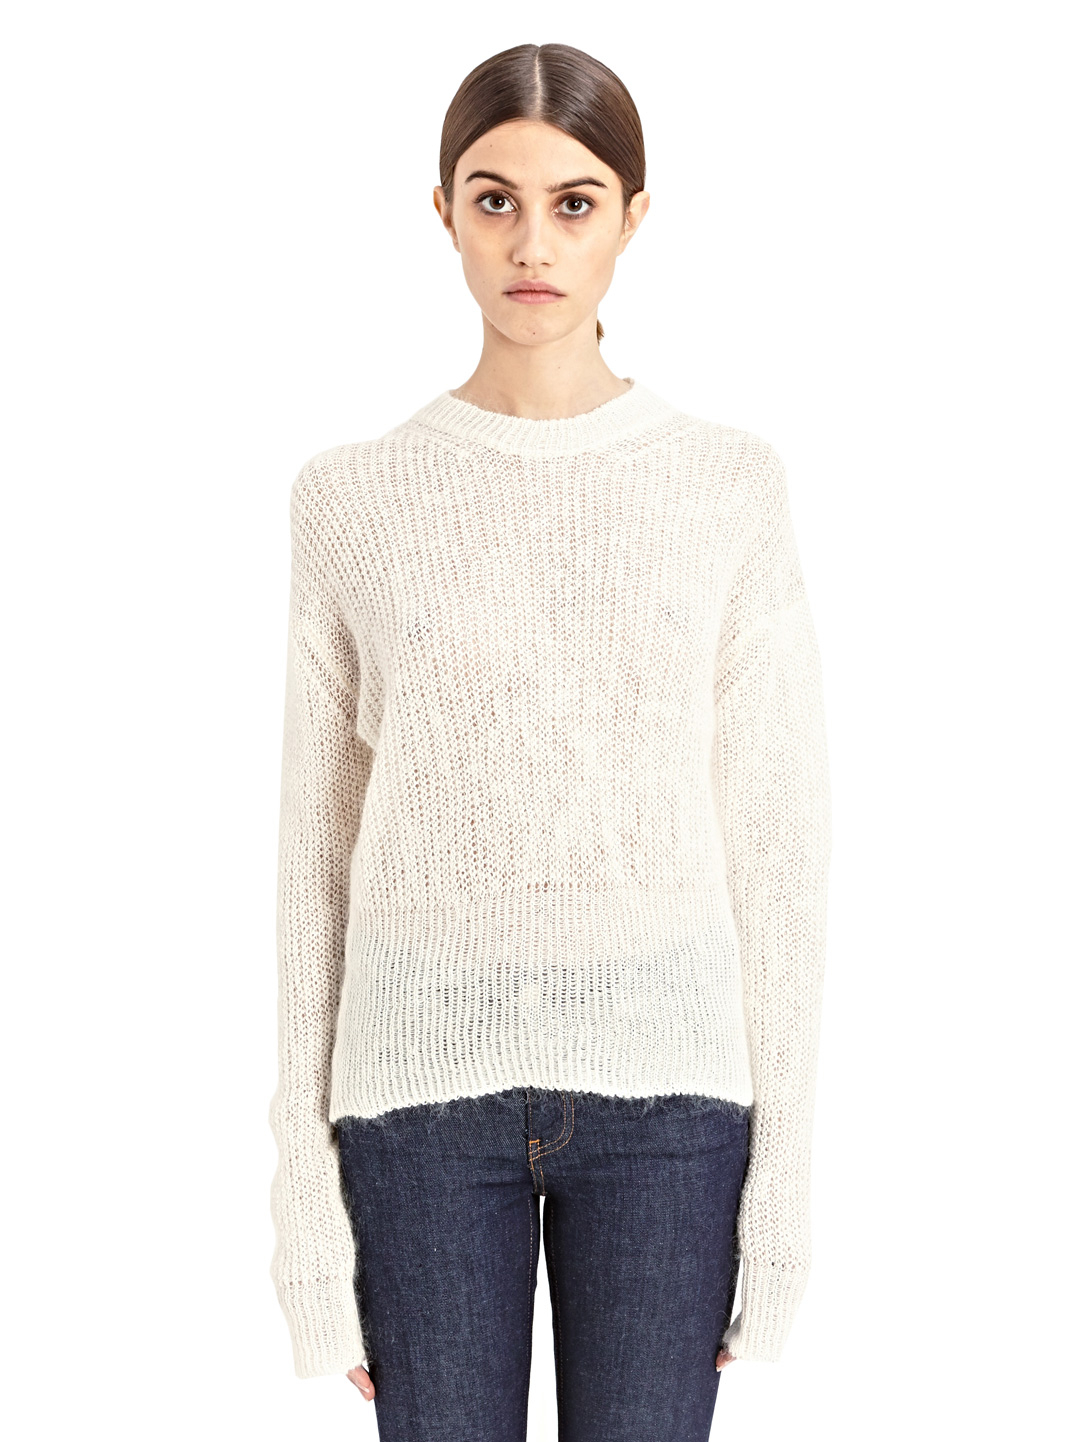 acne studios pamela mohair sweater in white lyst. Black Bedroom Furniture Sets. Home Design Ideas